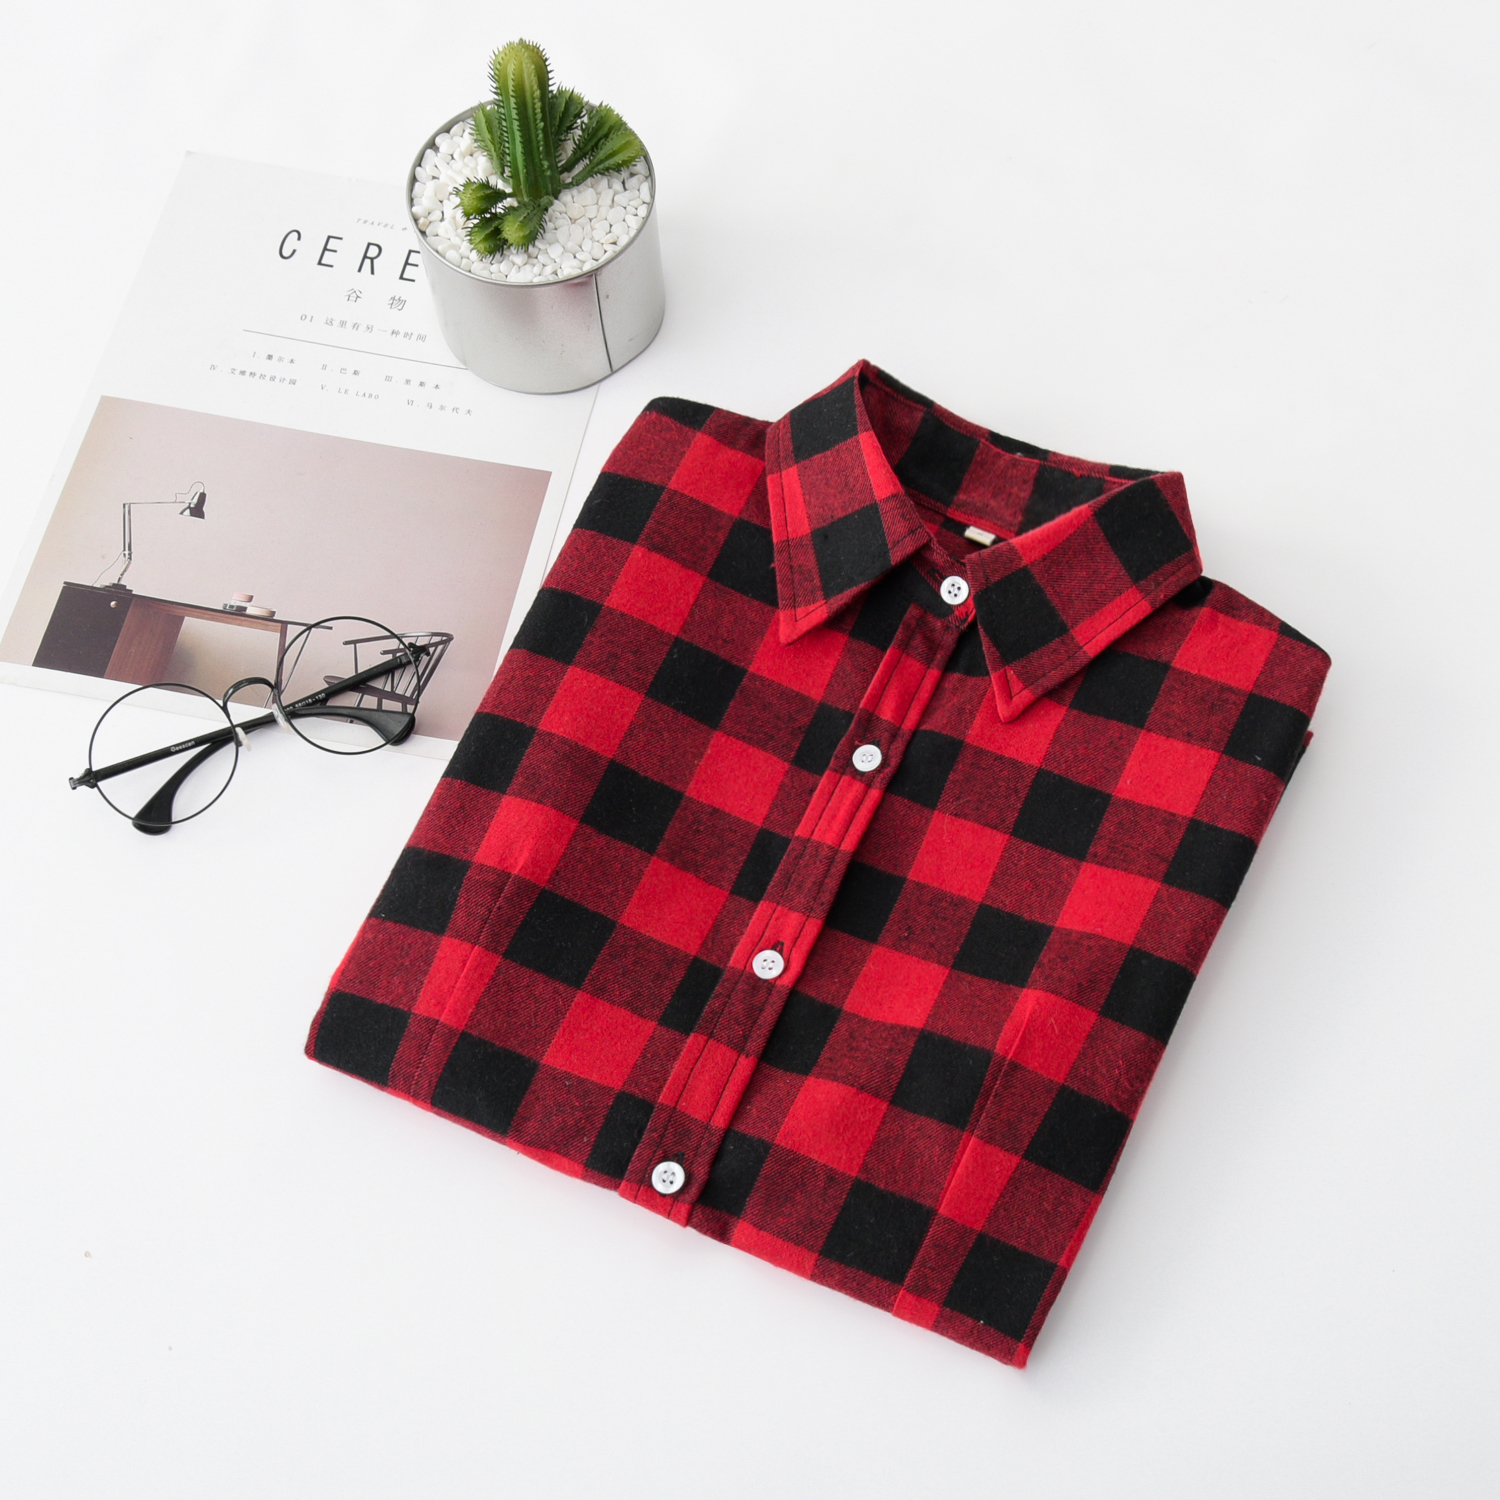 d32b0f01faa38 Dropwow 2018 Women Blouses Brand New Excellent Quality Flannel Red ...